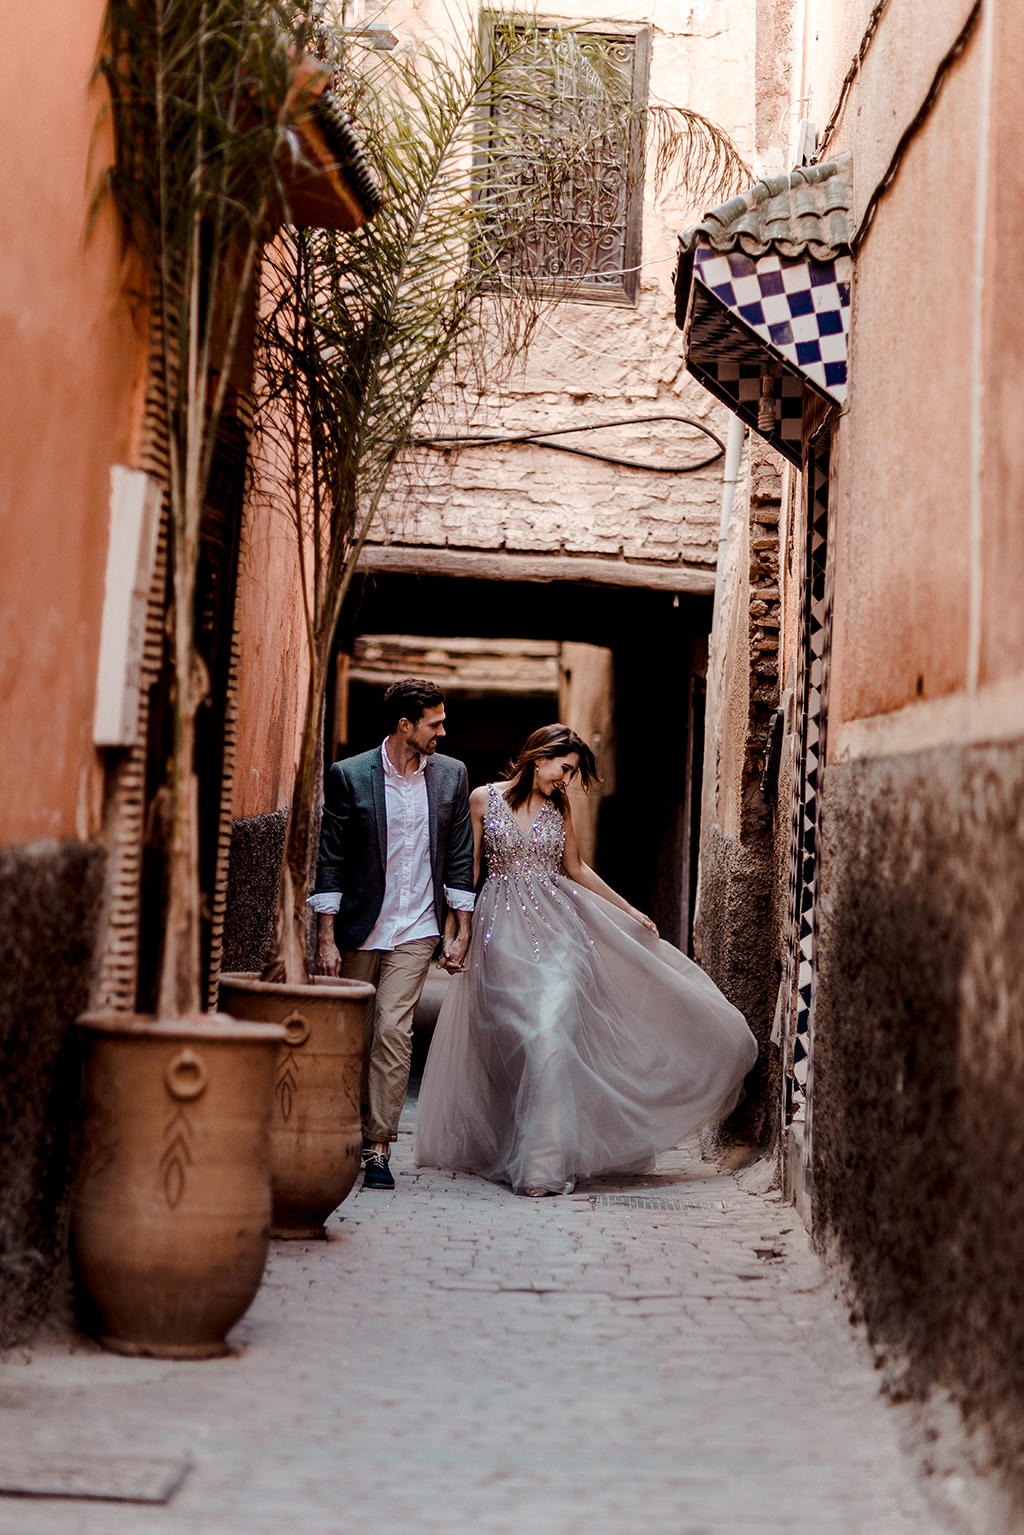 elena-engels-fotografie-marrakech-travel-shooting-reise-bemarrakech_riad_wedding011